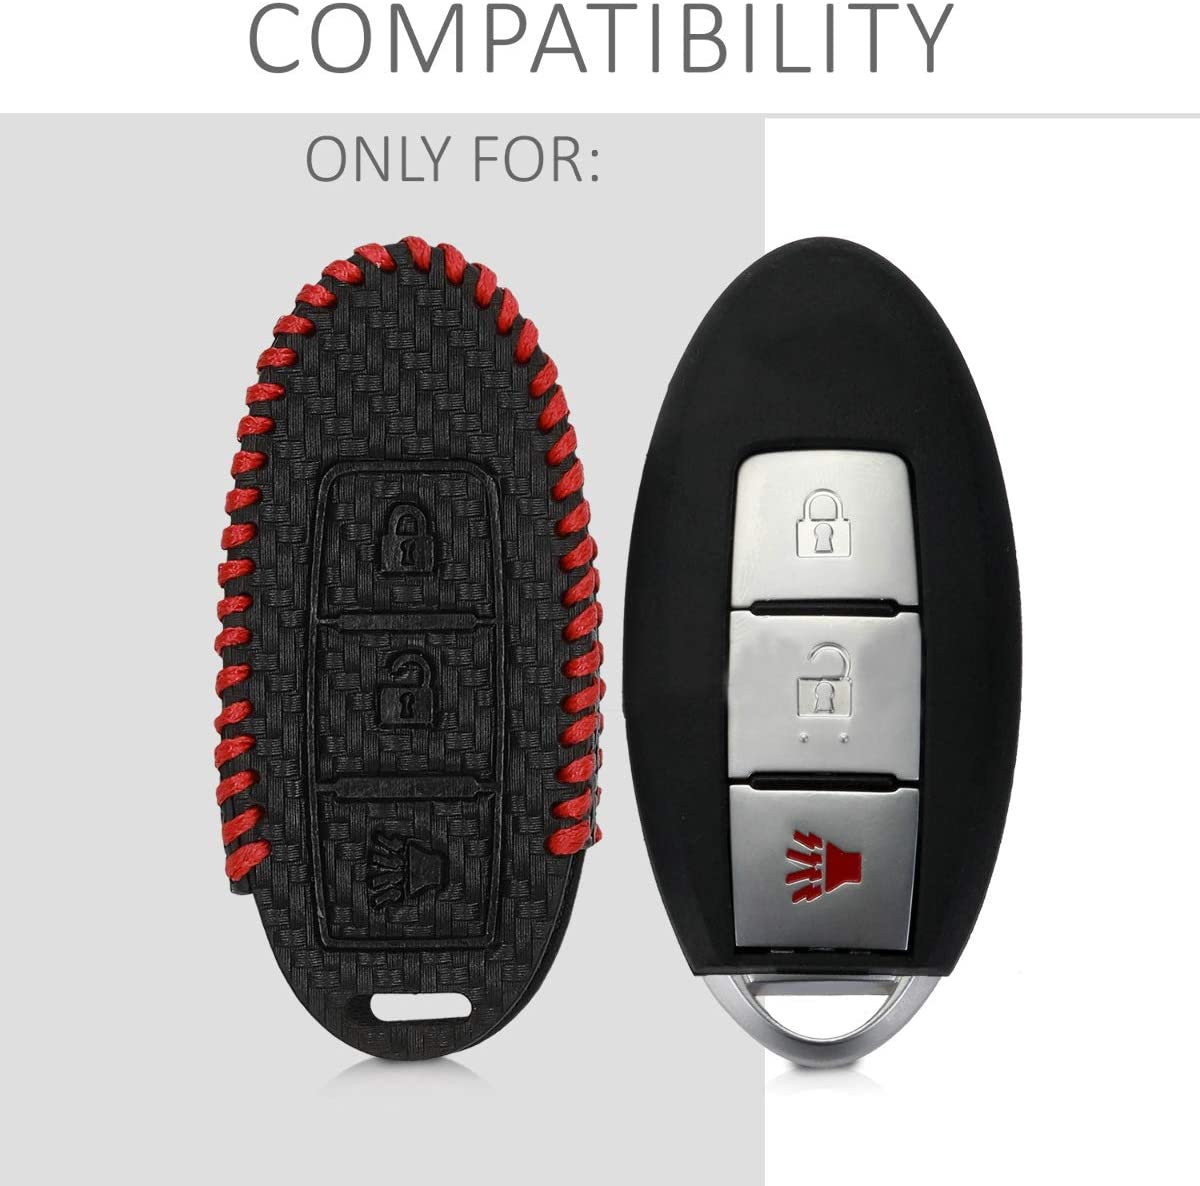 kwmobile Car Key Cover Compatible with Nissan 3 Button Car Key Carbon Black//Red PU Leather Car Key Fob Cover